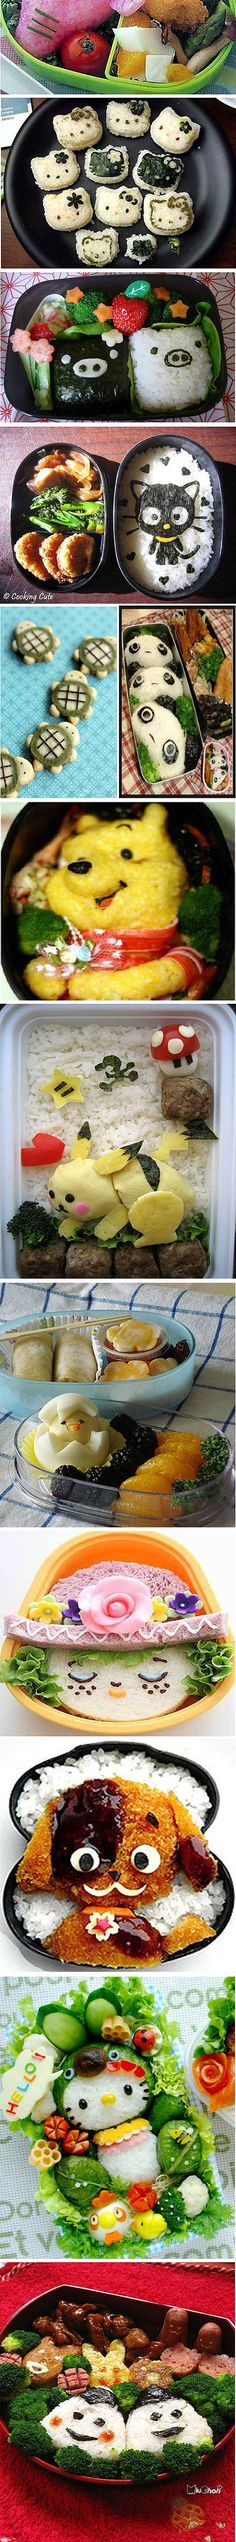 A Merry-Go-Round of Summer Bento 🤗🎀💖 - Japanese Bento & Traditional Fare 弁当、和食 - Food Kawaii, Bento Kawaii, Cute Bento Boxes, Bento Box Lunch, Bento Food, Lunch Boxes, Bento Lunchbox, Japanese Food Art, Japanese Lunch